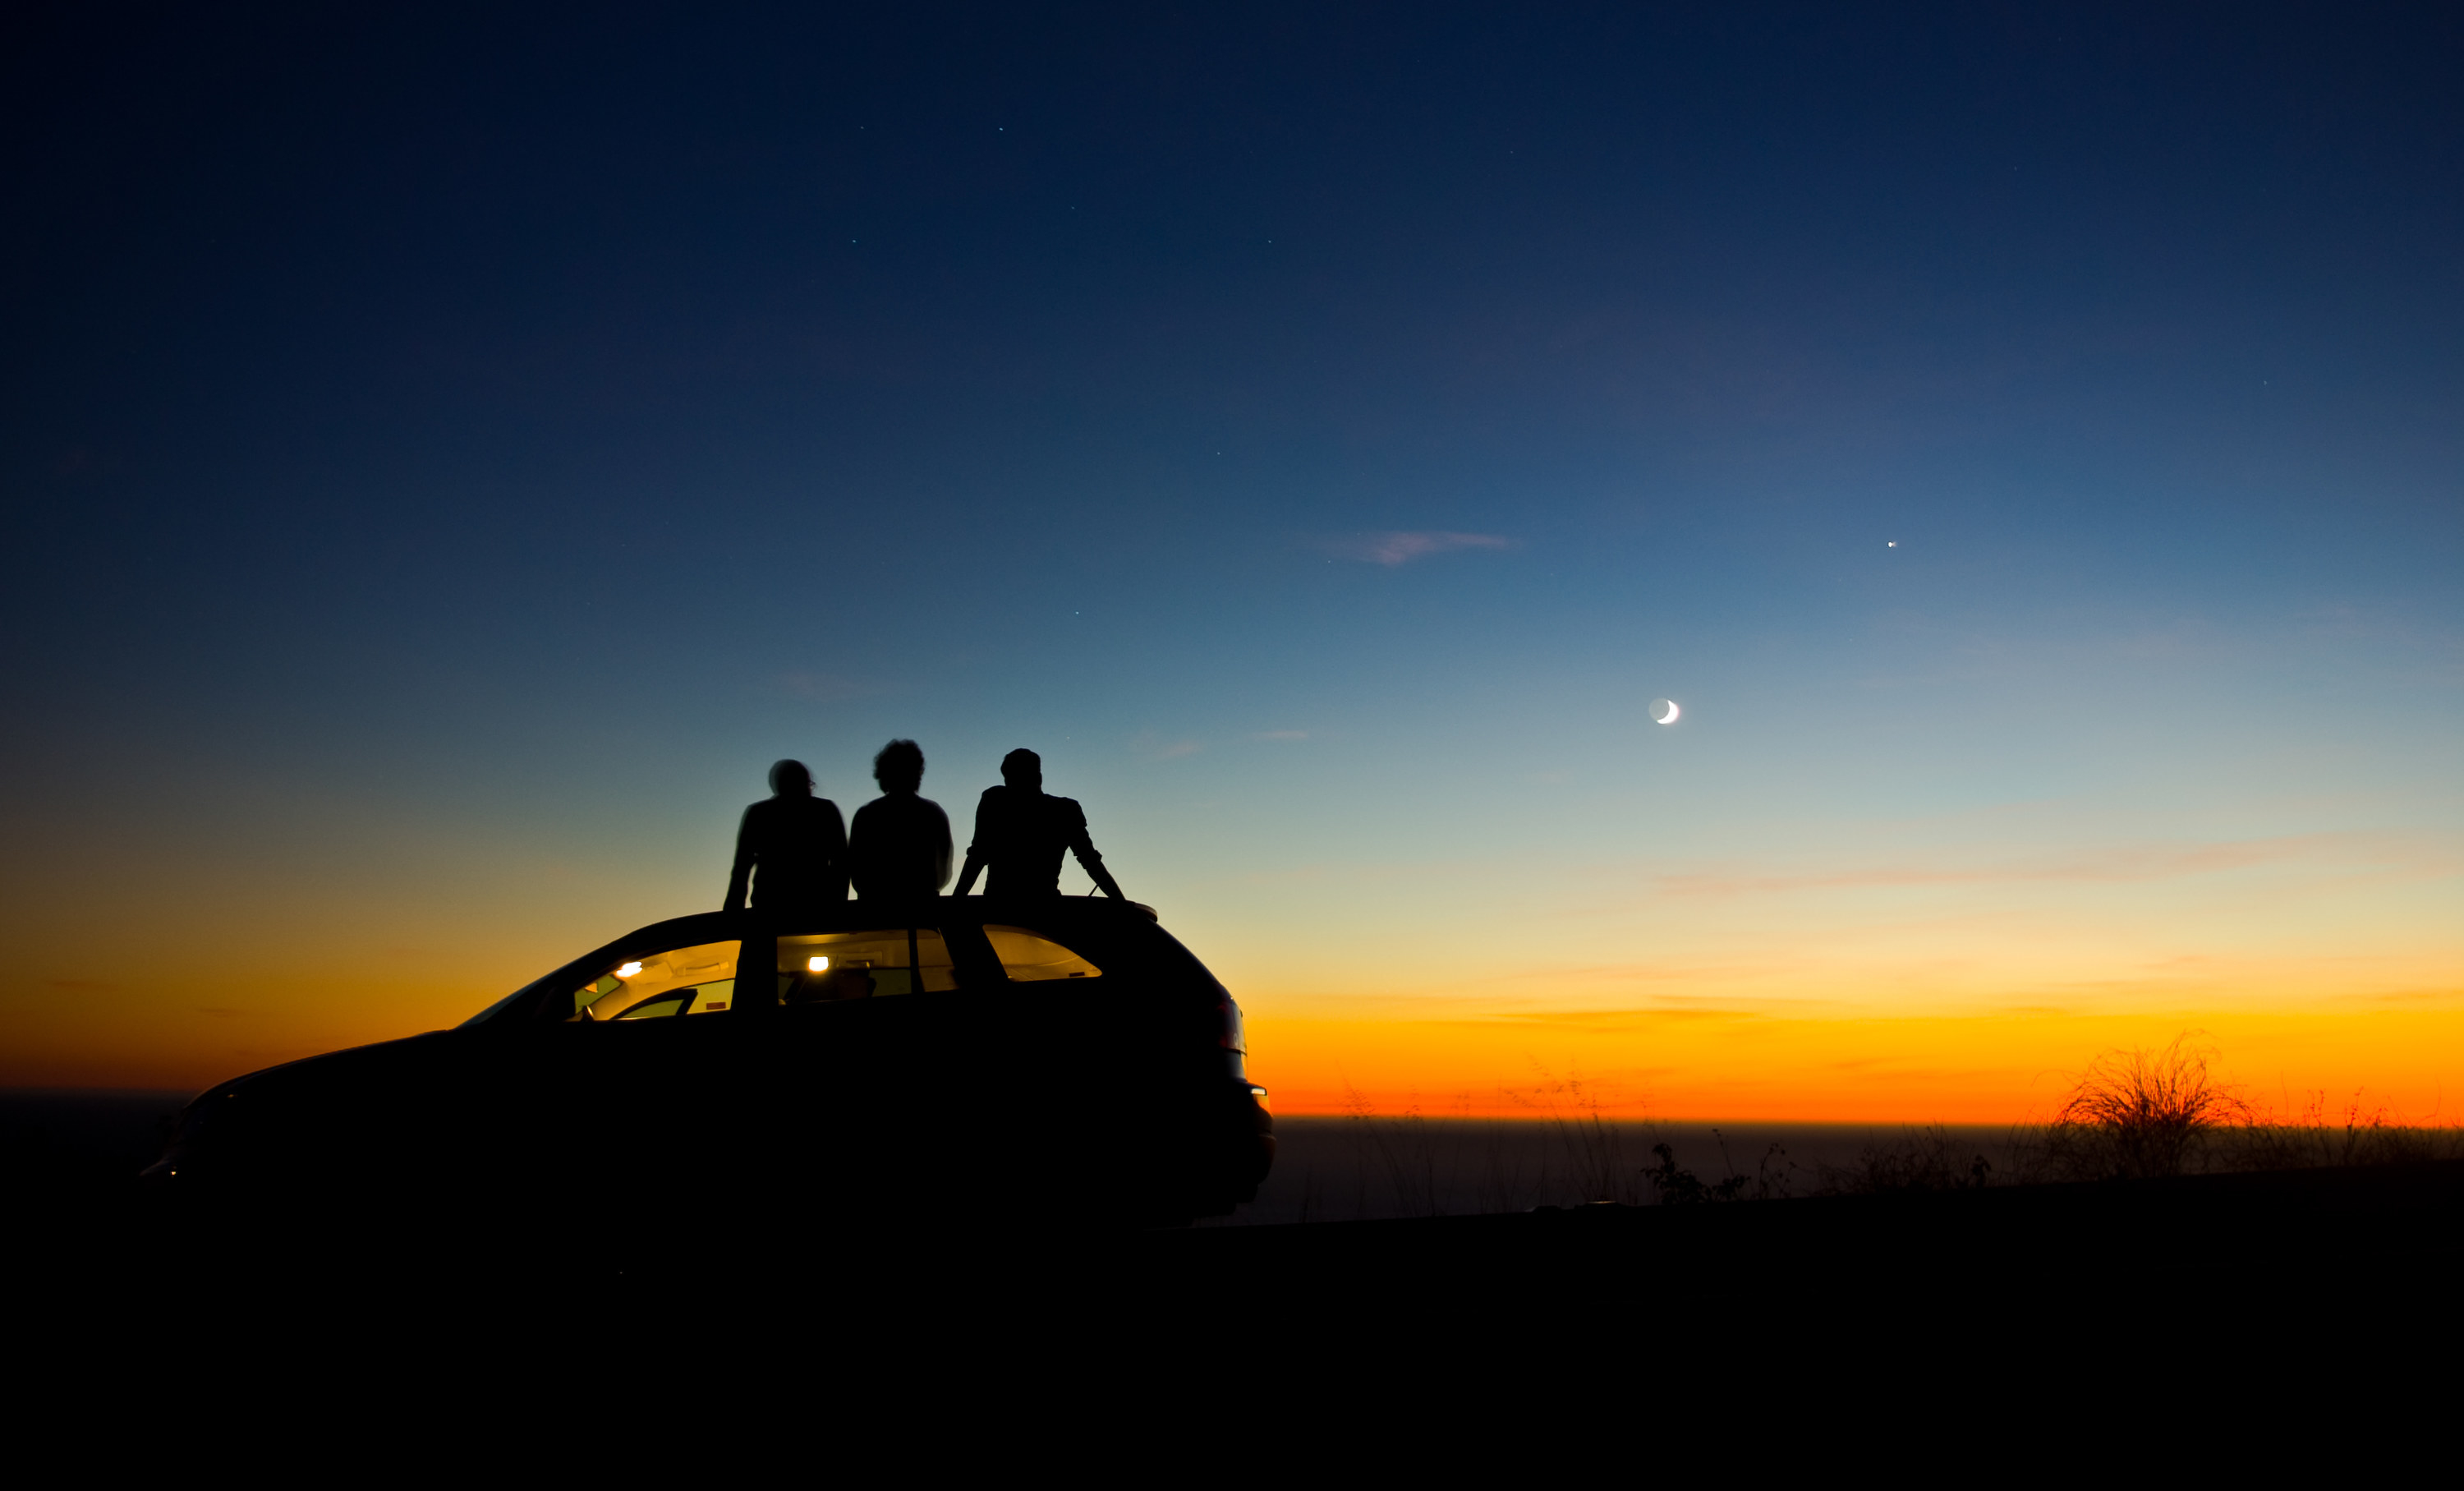 photo of the sunsetting and the moon appearing while on the left is a car with three people sitting on top of the roof of the car while watching the sunset, the sky is dark blue, blue, orange